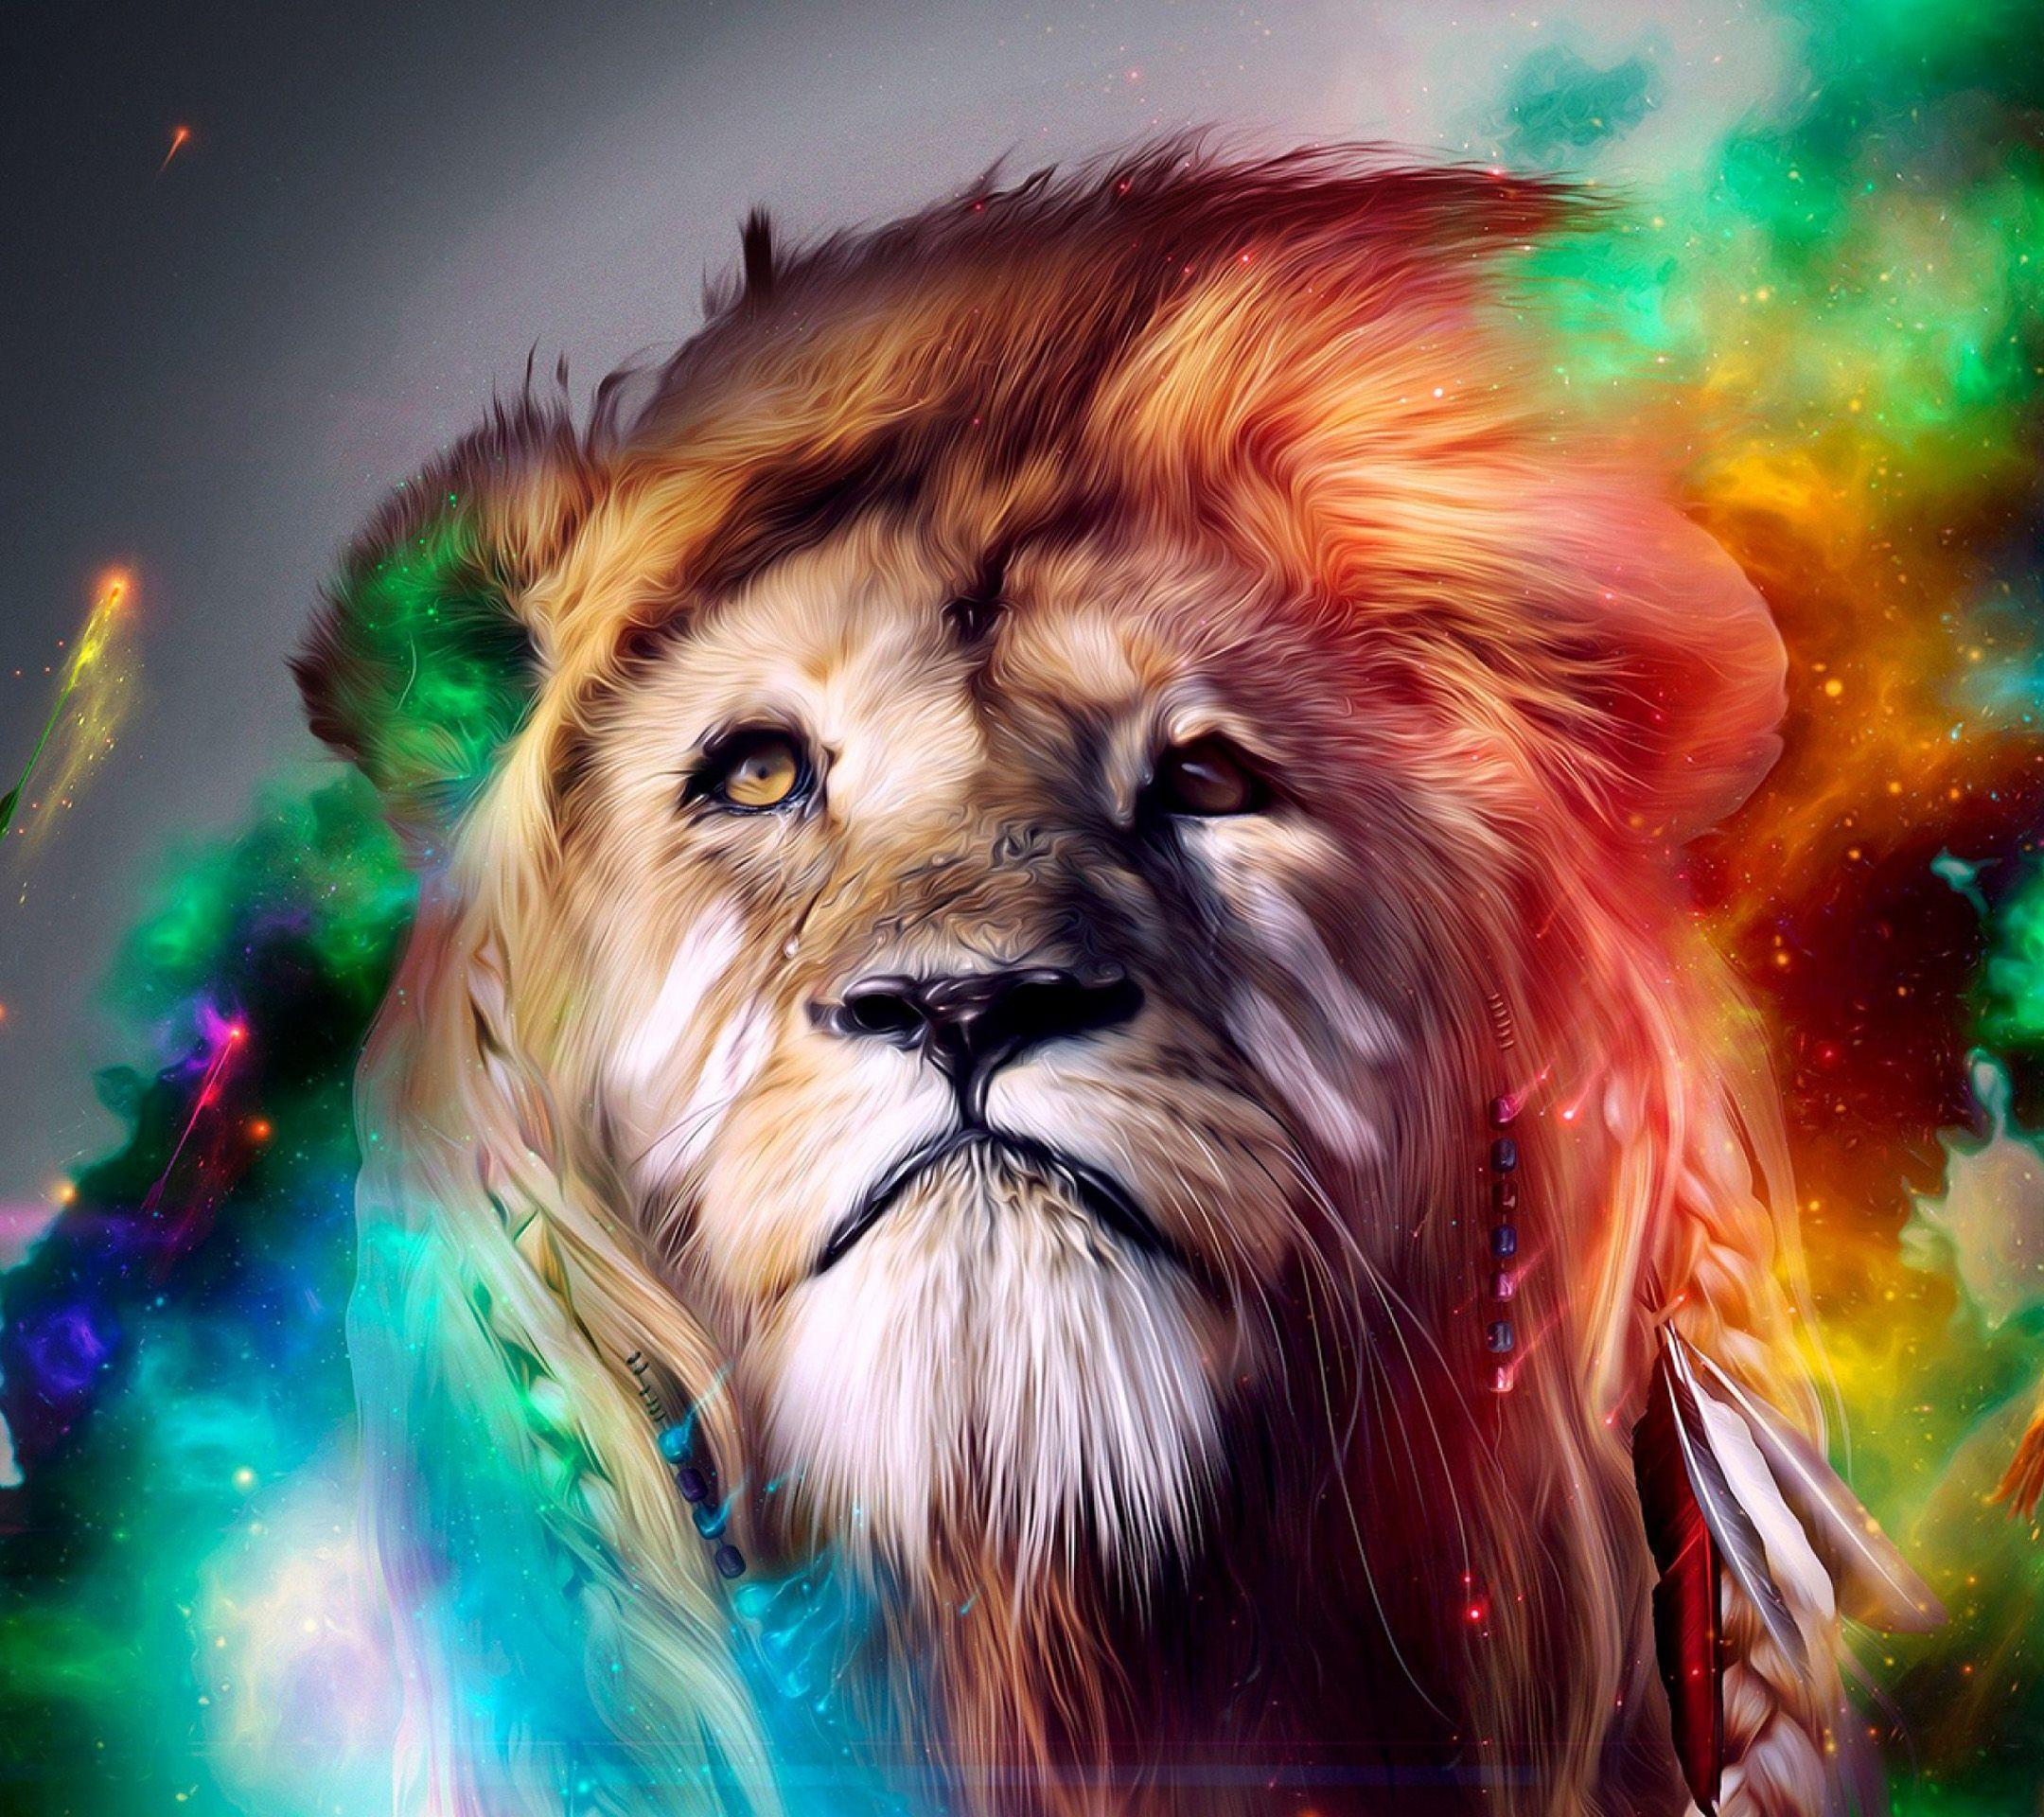 wallpaper lion art